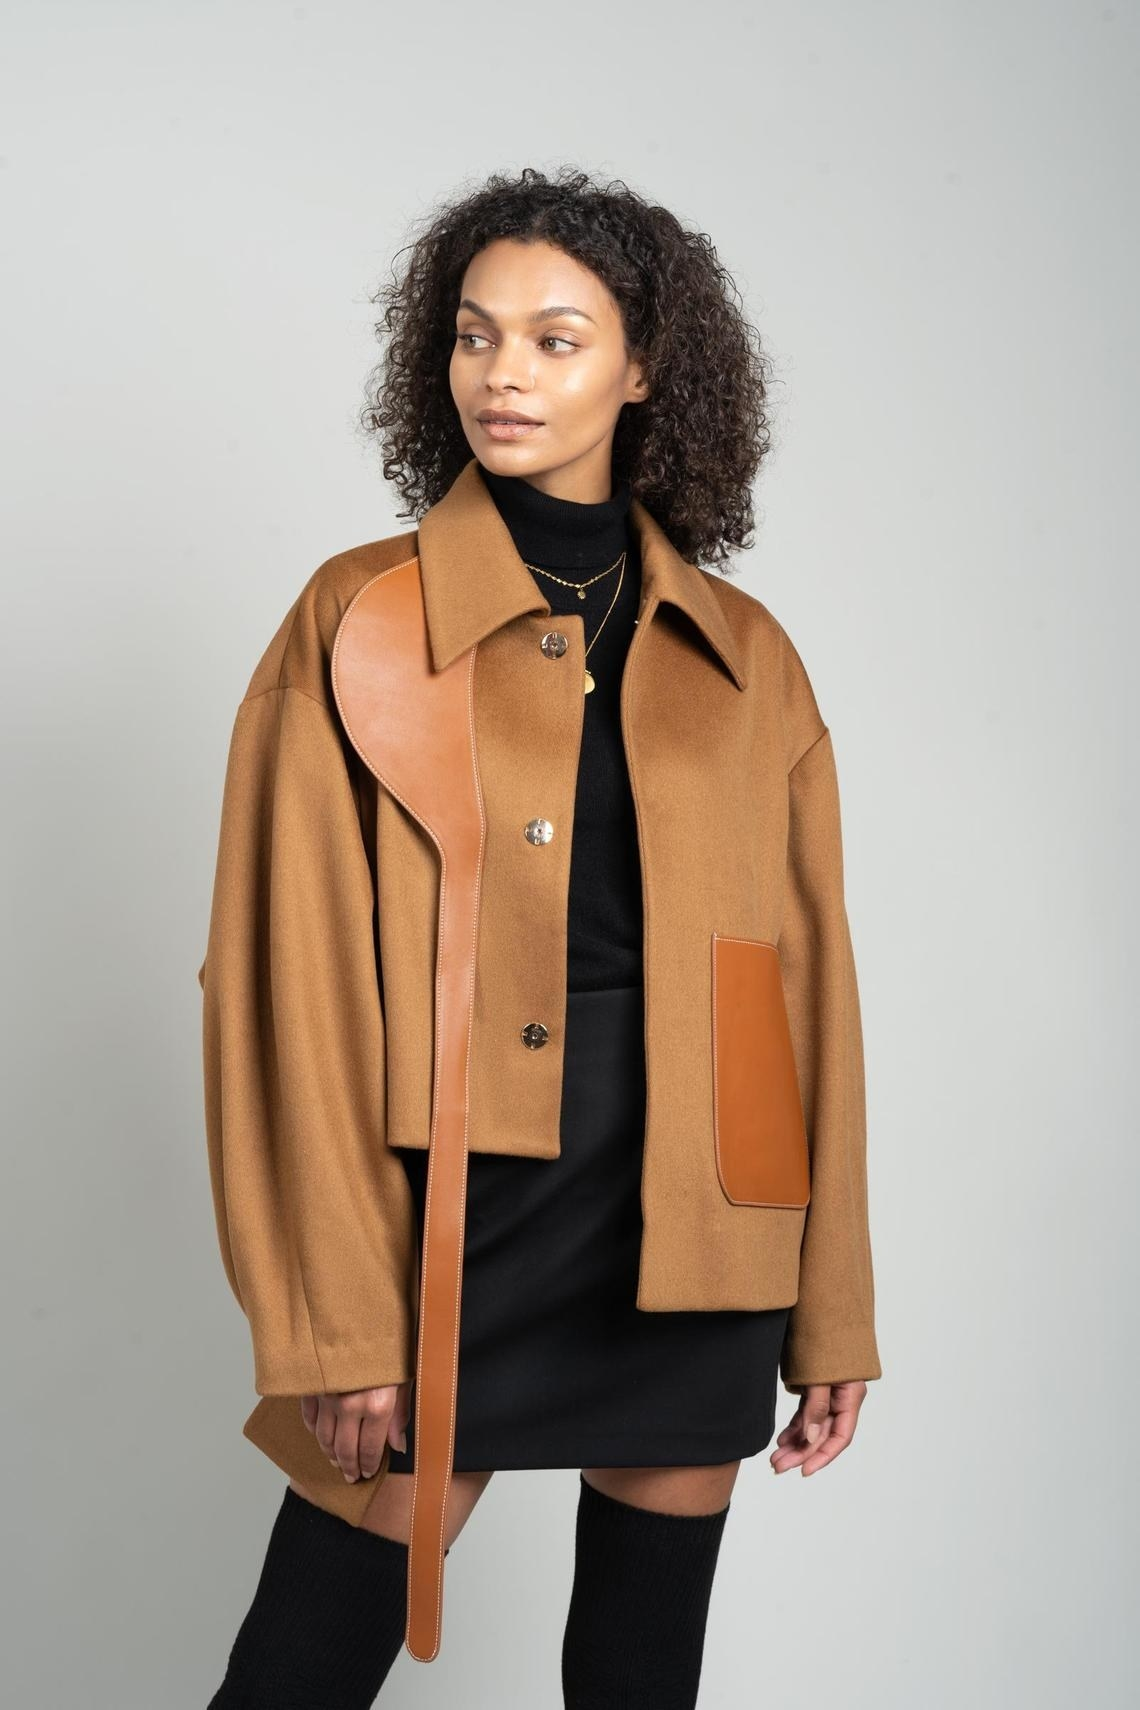 Tan and faux leather jacket with asymmetrical lengths on the front and back (three different lengths in all). It has a leather pocket on the front of one side and a leather decorative strap from the collar down the other side.